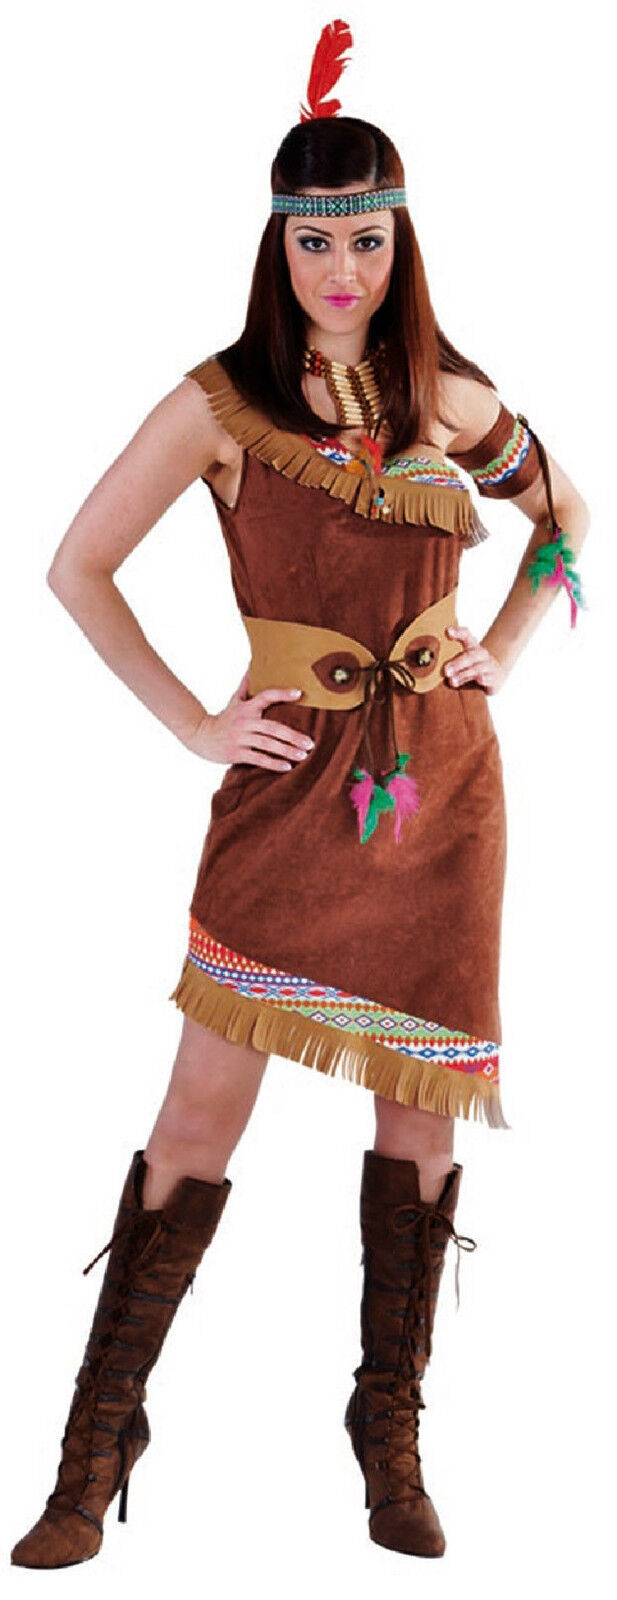 Sexy indiens indiens indiens robe costume squaw apache sioux indienne cow girl Indiens Costume 6f09b9